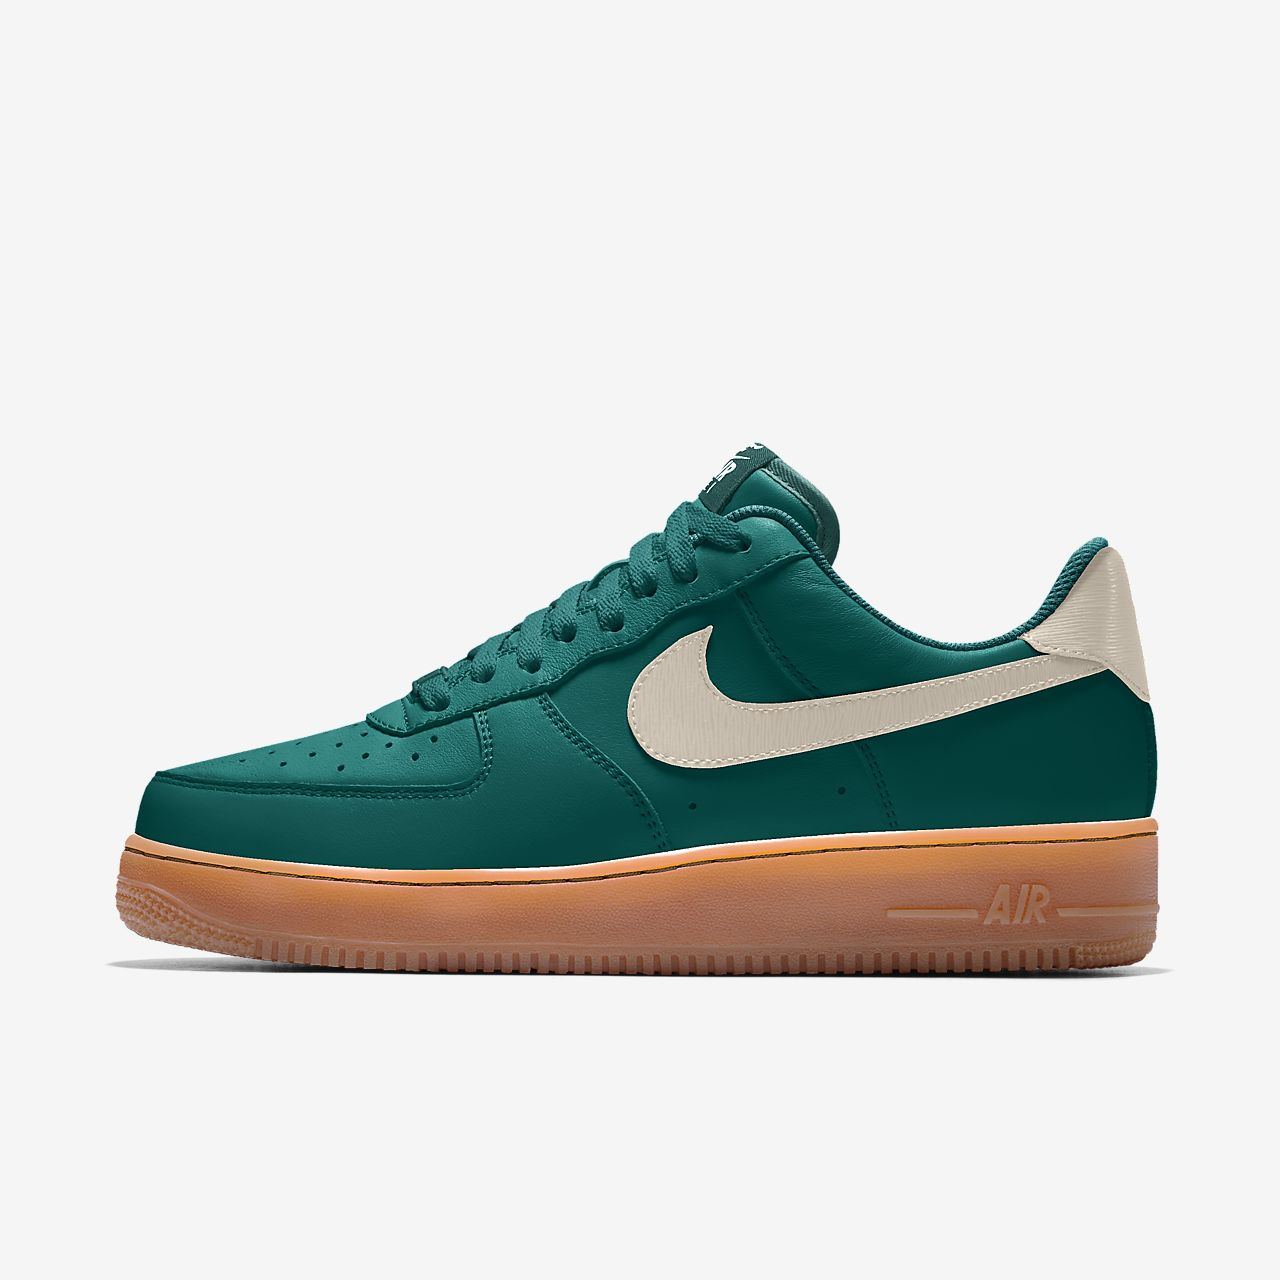 Chaussure personnalisable Nike Air Force 1 Low By You pour Femme